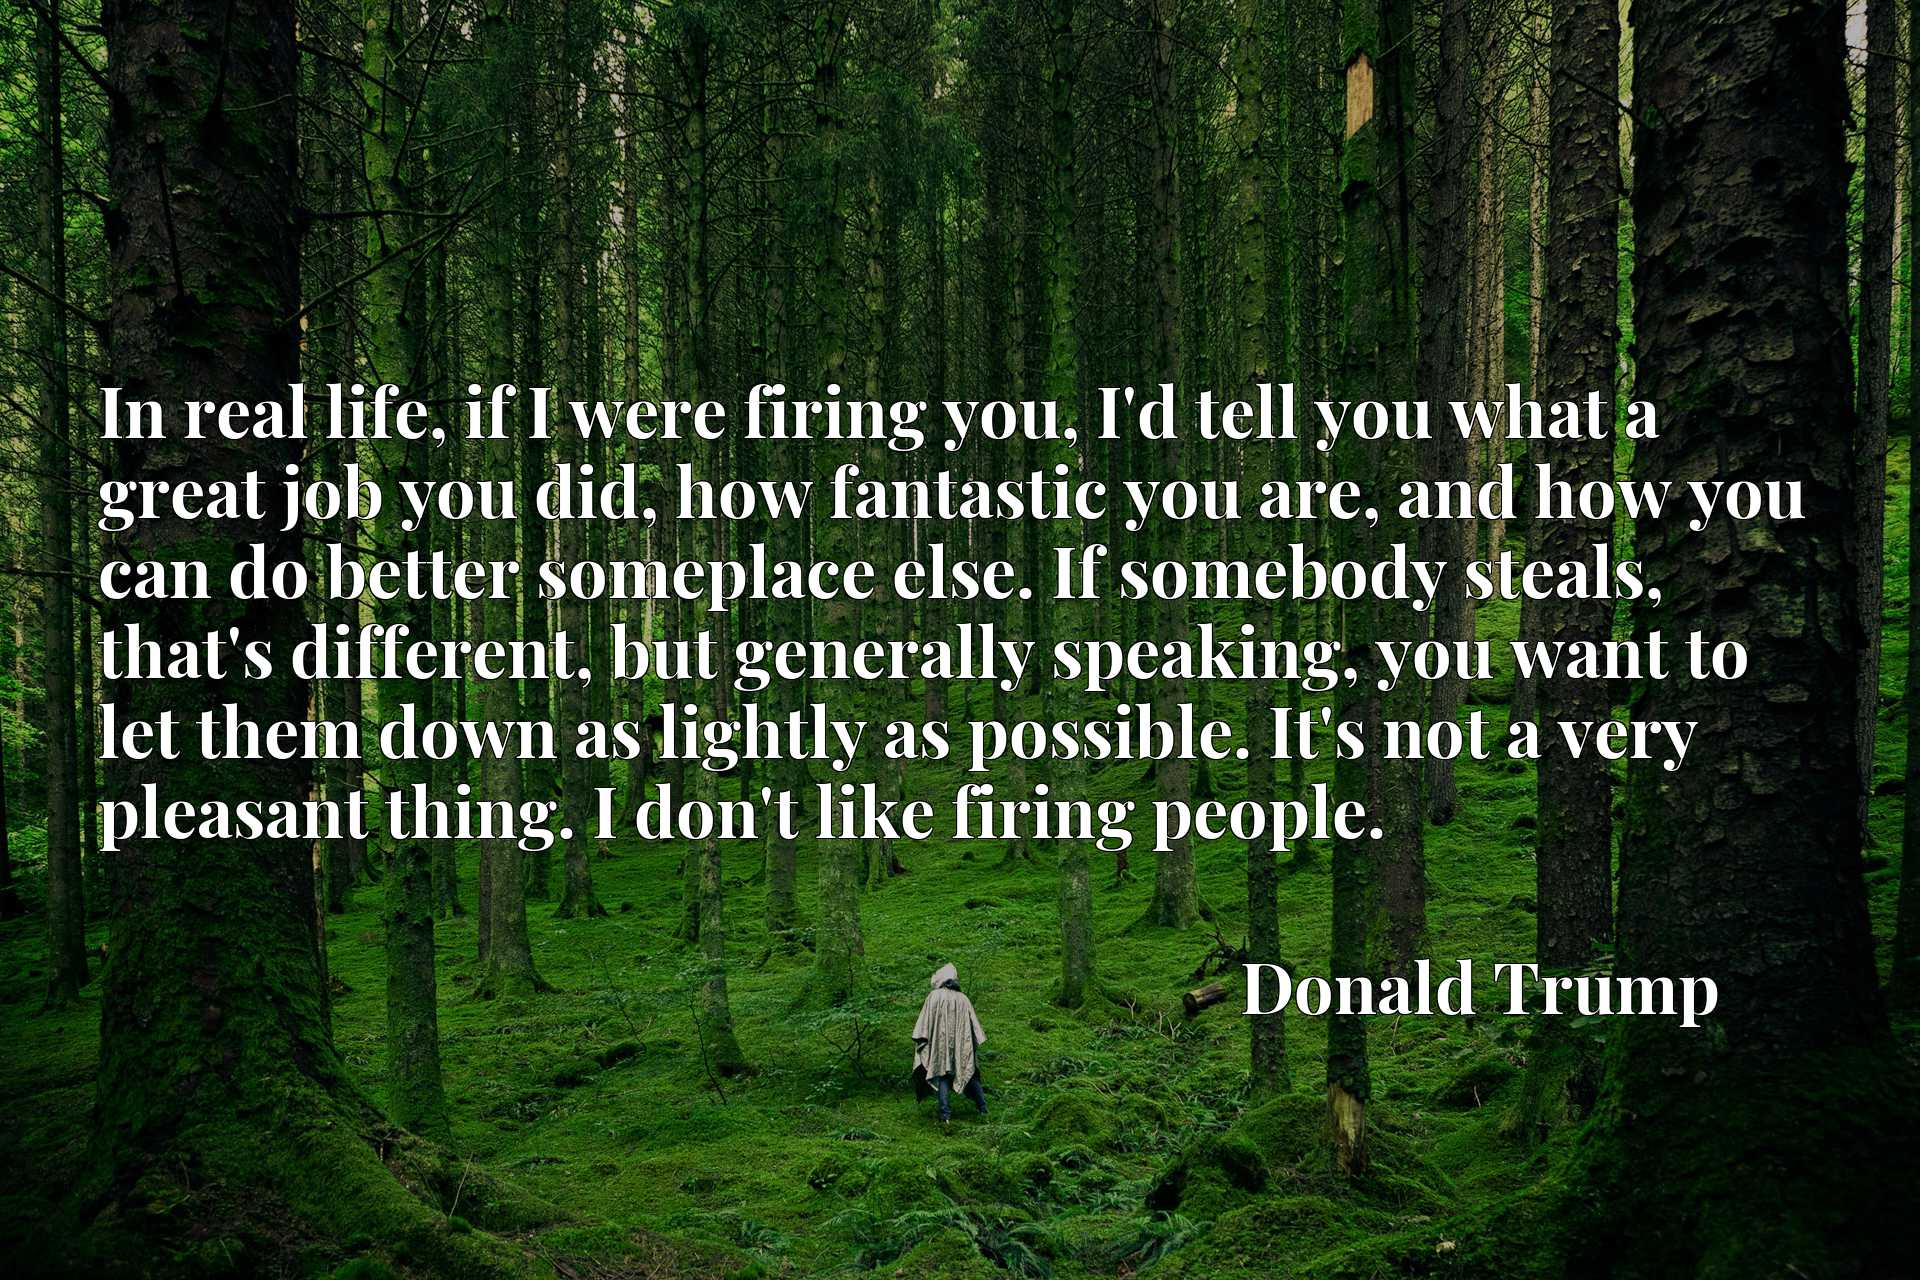 In real life, if I were firing you, I'd tell you what a great job you did, how fantastic you are, and how you can do better someplace else. If somebody steals, that's different, but generally speaking, you want to let them down as lightly as possible. It's not a very pleasant thing. I don't like firing people.